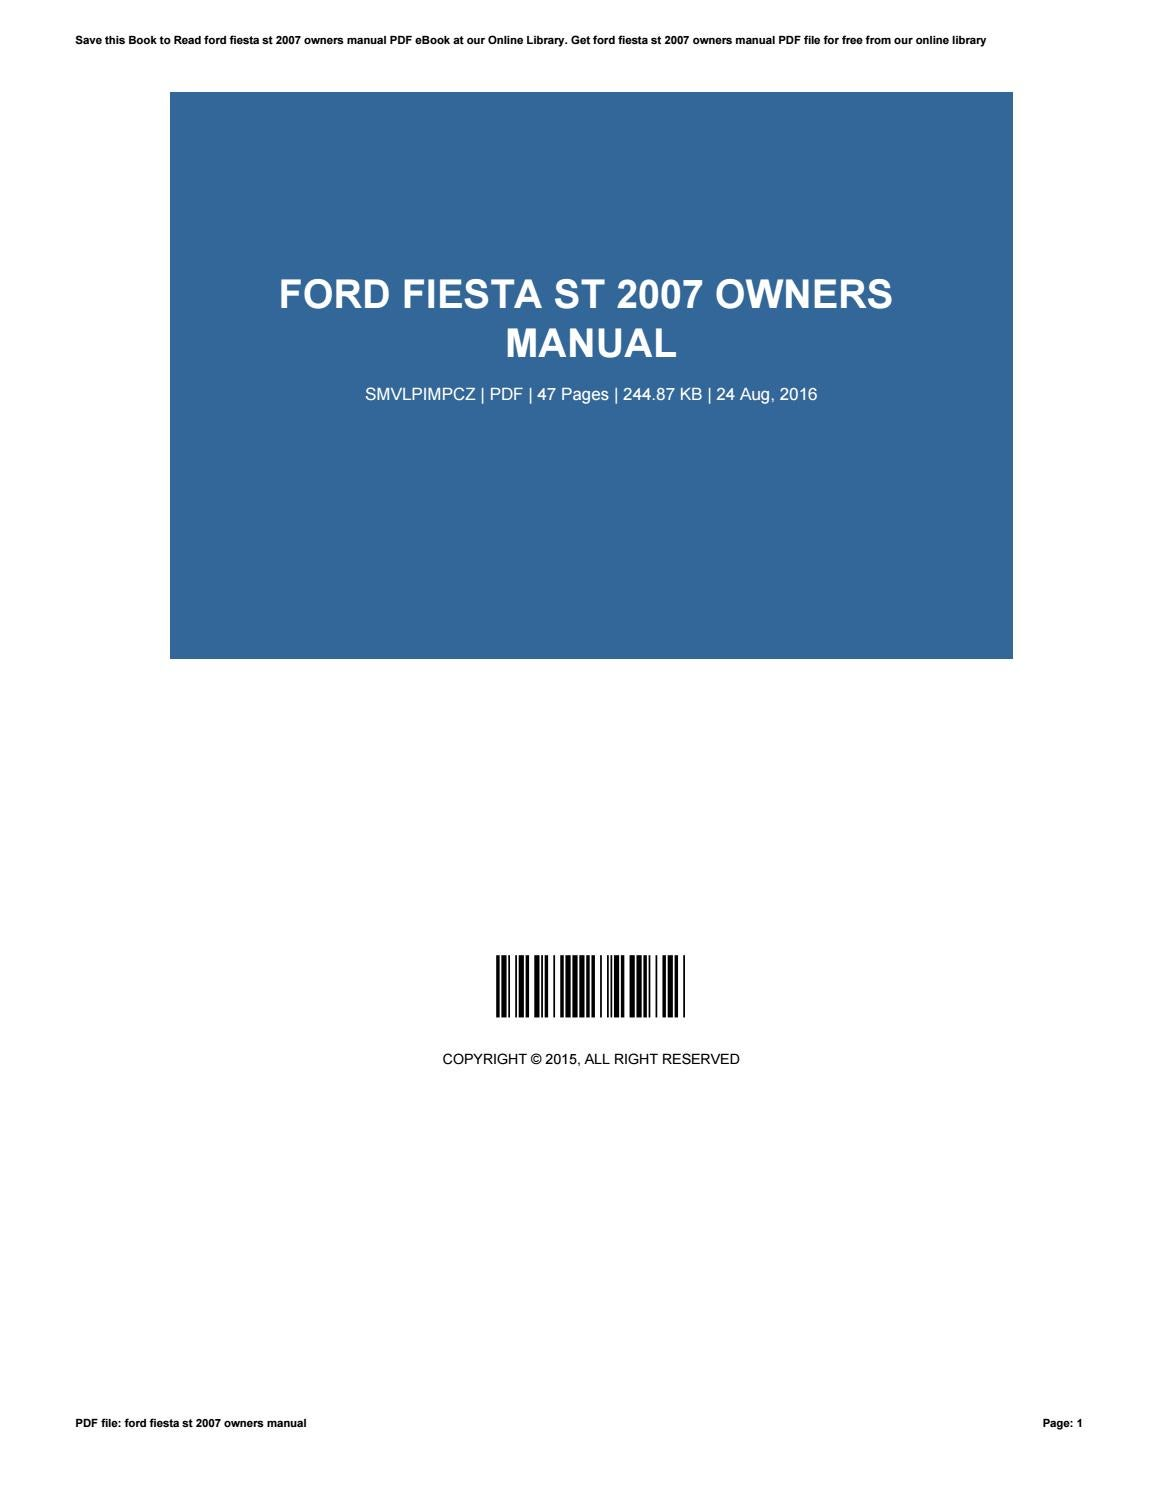 ford fiesta 2007 owners manual download